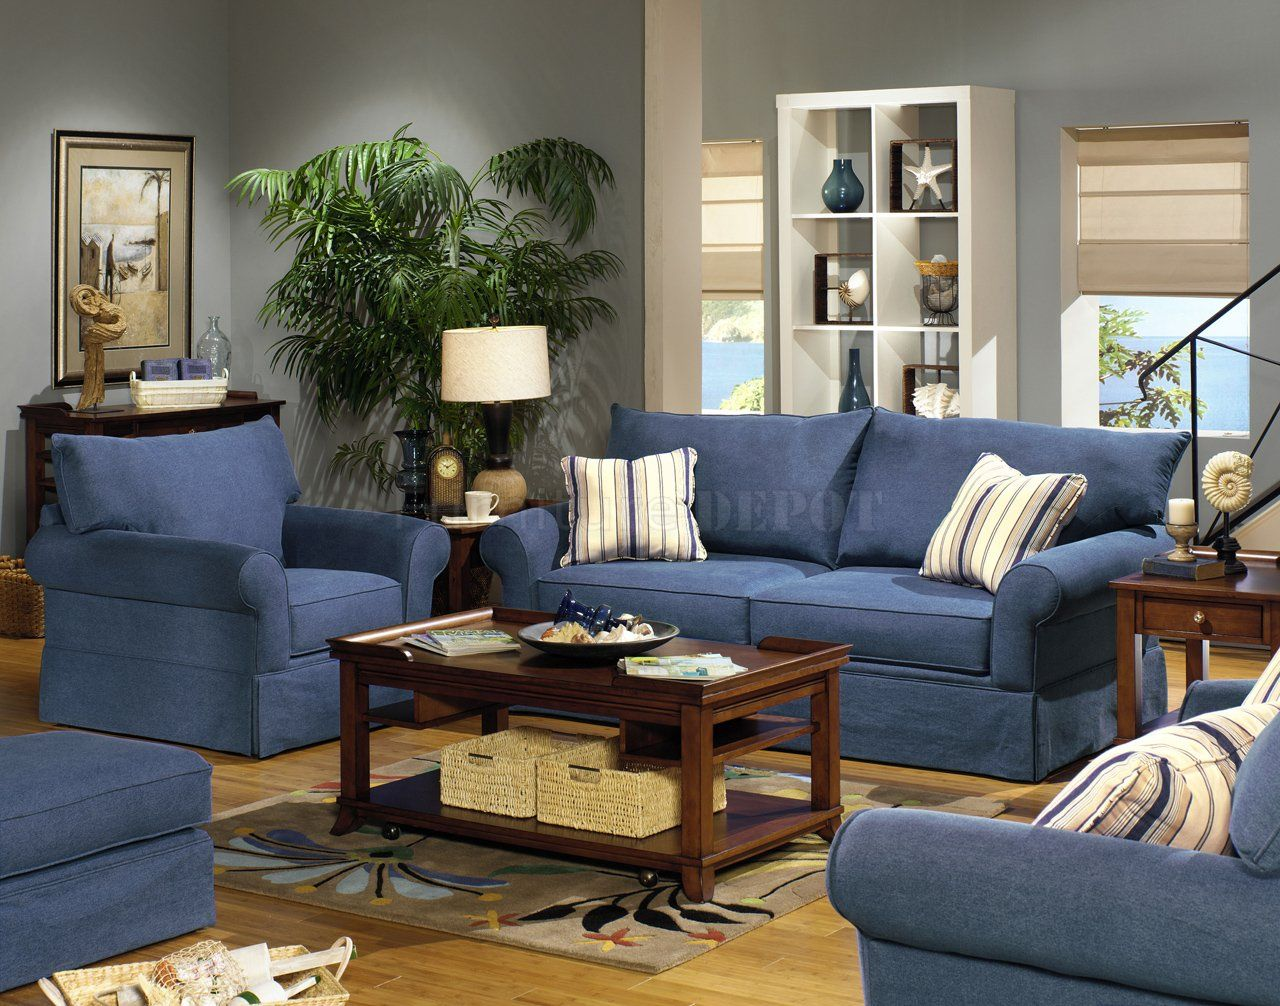 Blue Color Living Room Collection blue living room furniture sets | blue denim fabric modern sofa